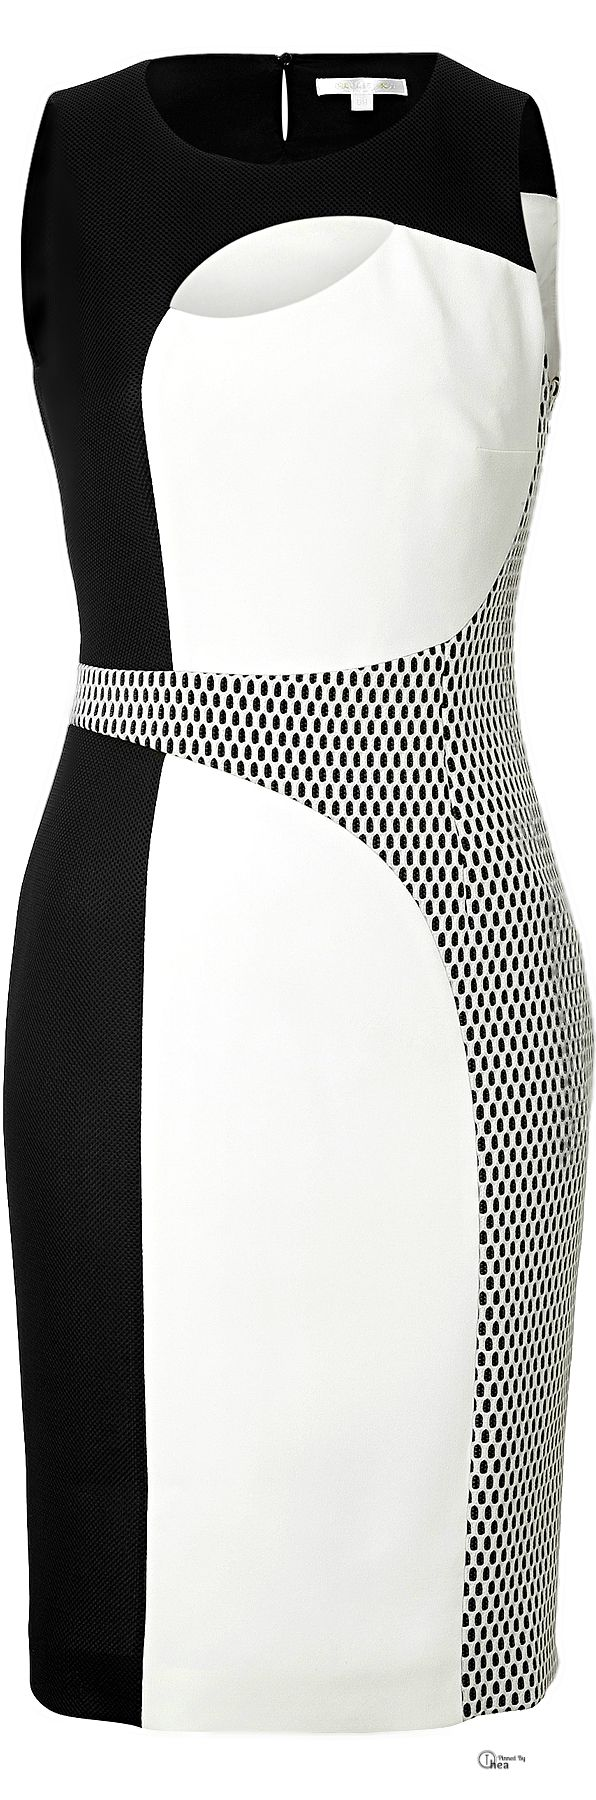 Paule Ka ○ Mod black and white colorblock Dress | My Style ...